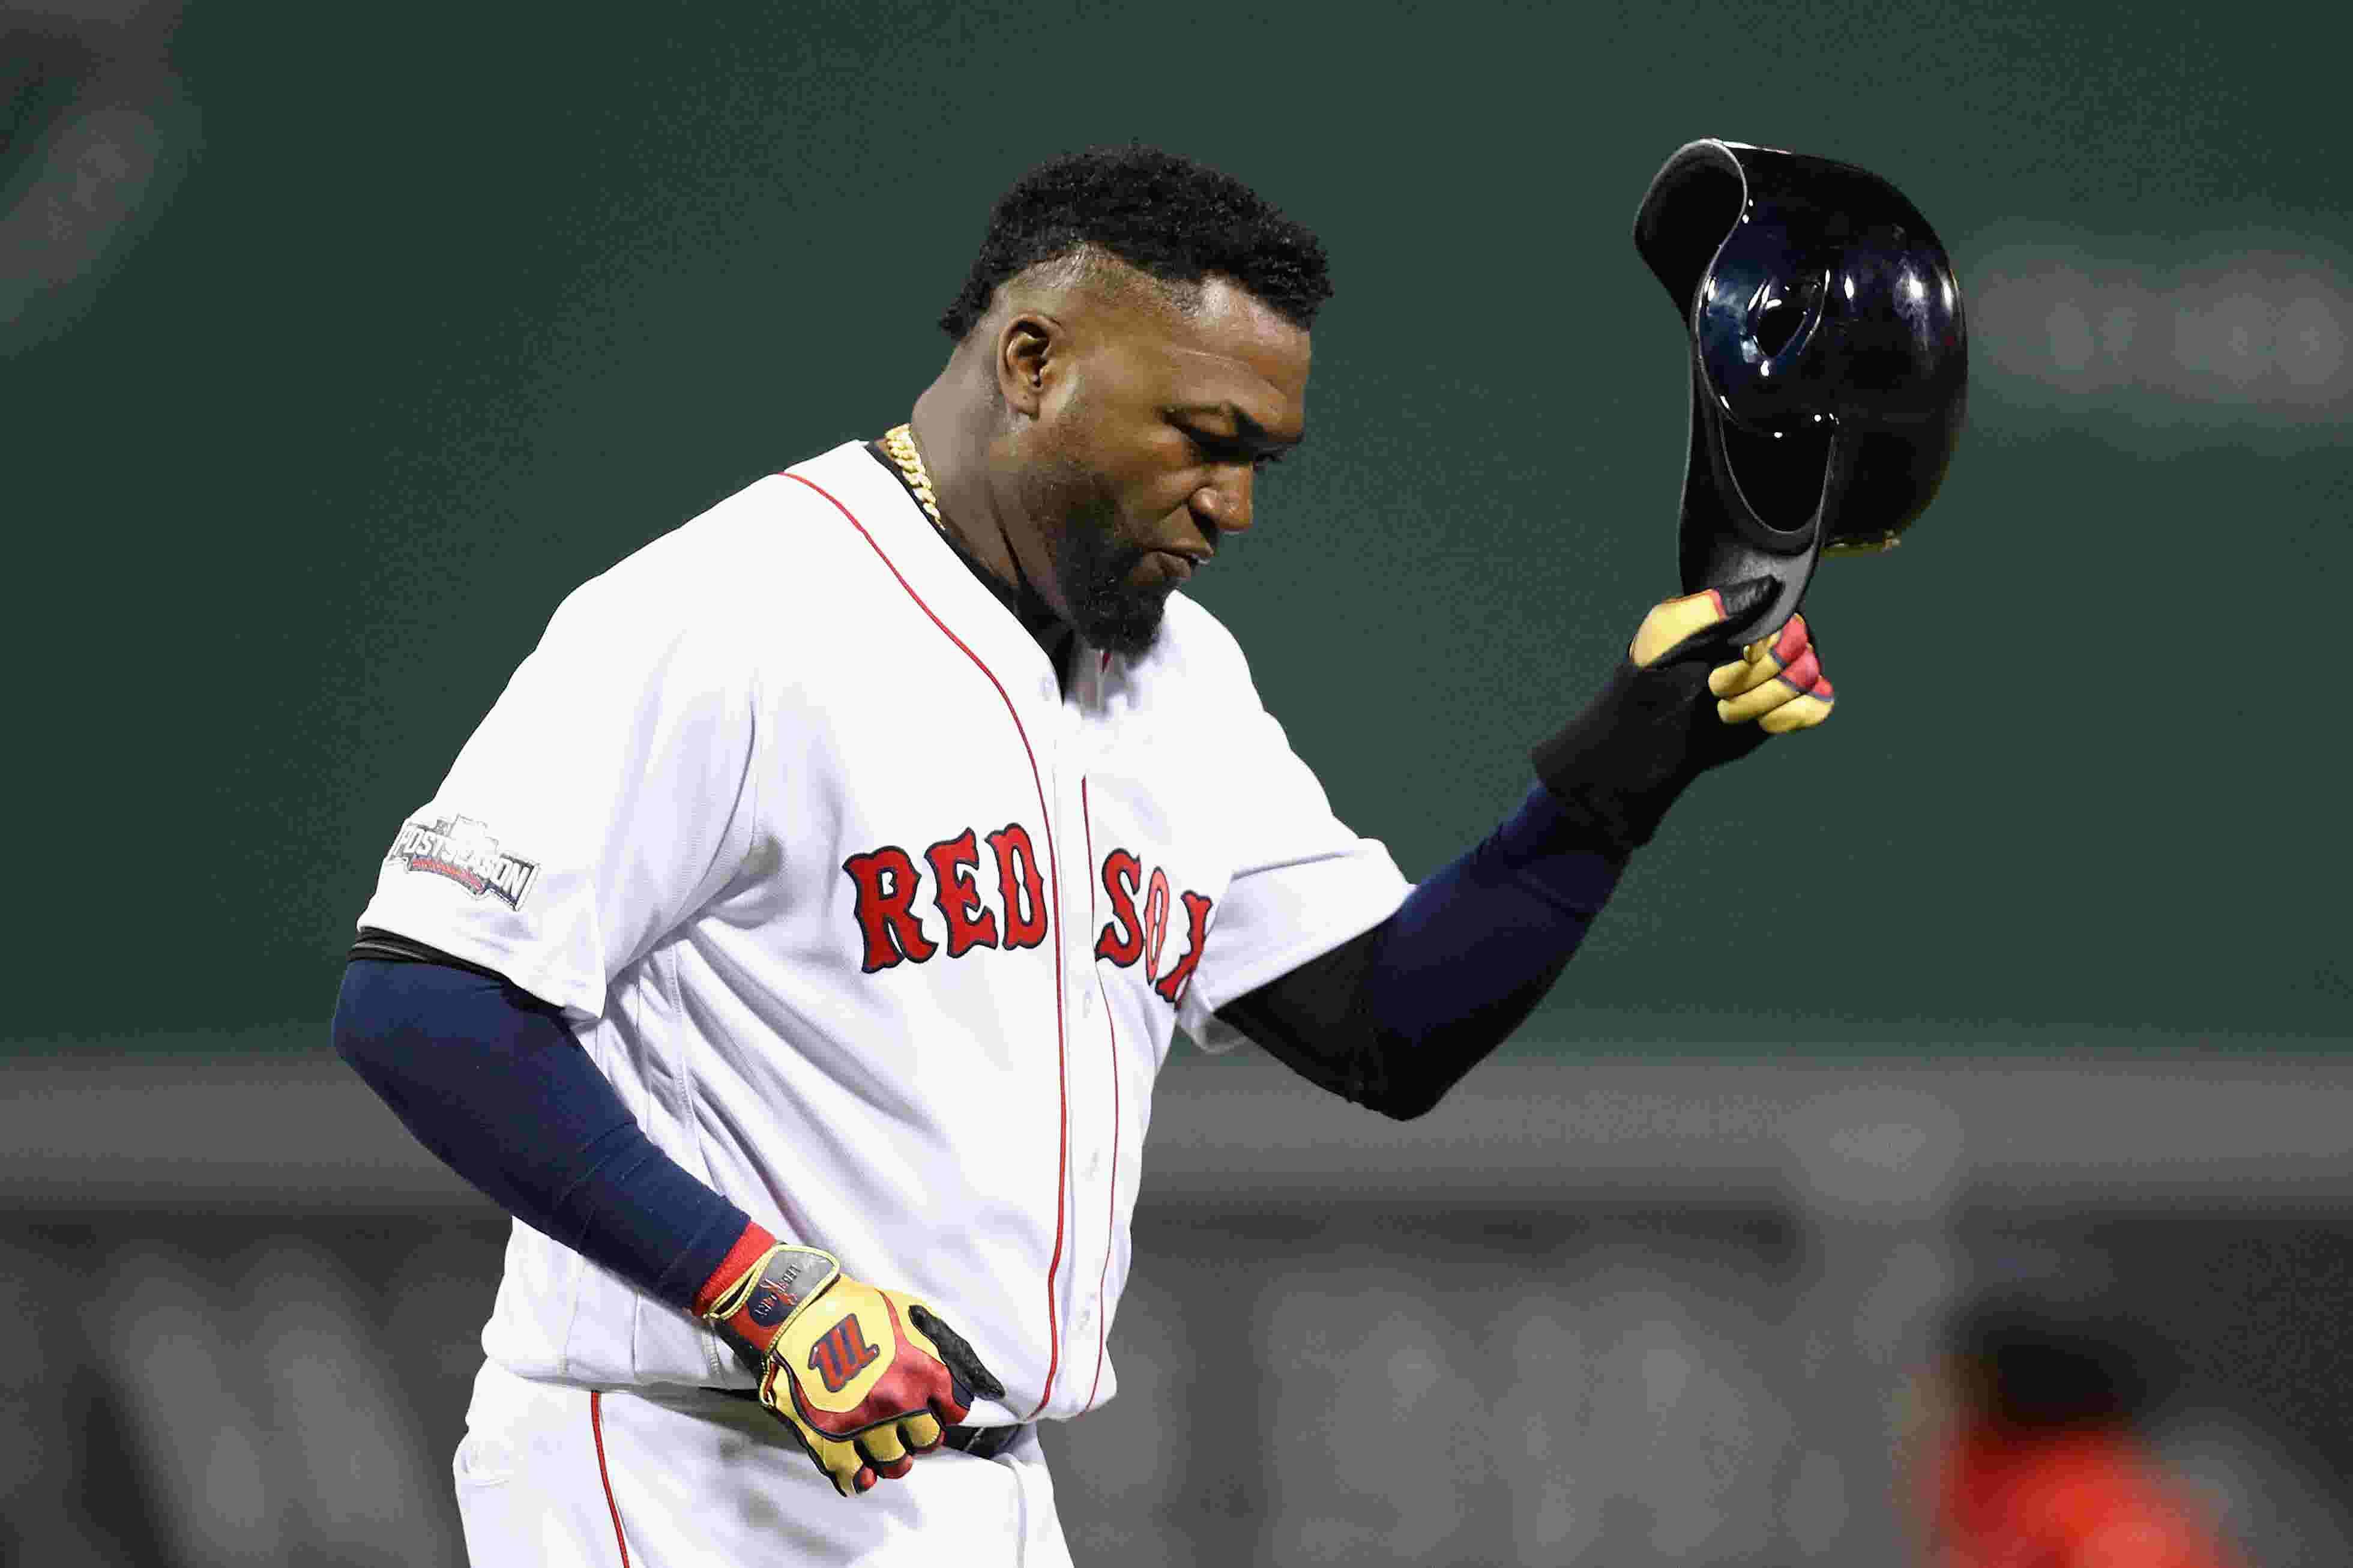 948fc33c0 Red Sox, Big Papi fans rally around David Ortiz during Game at Fenway Park